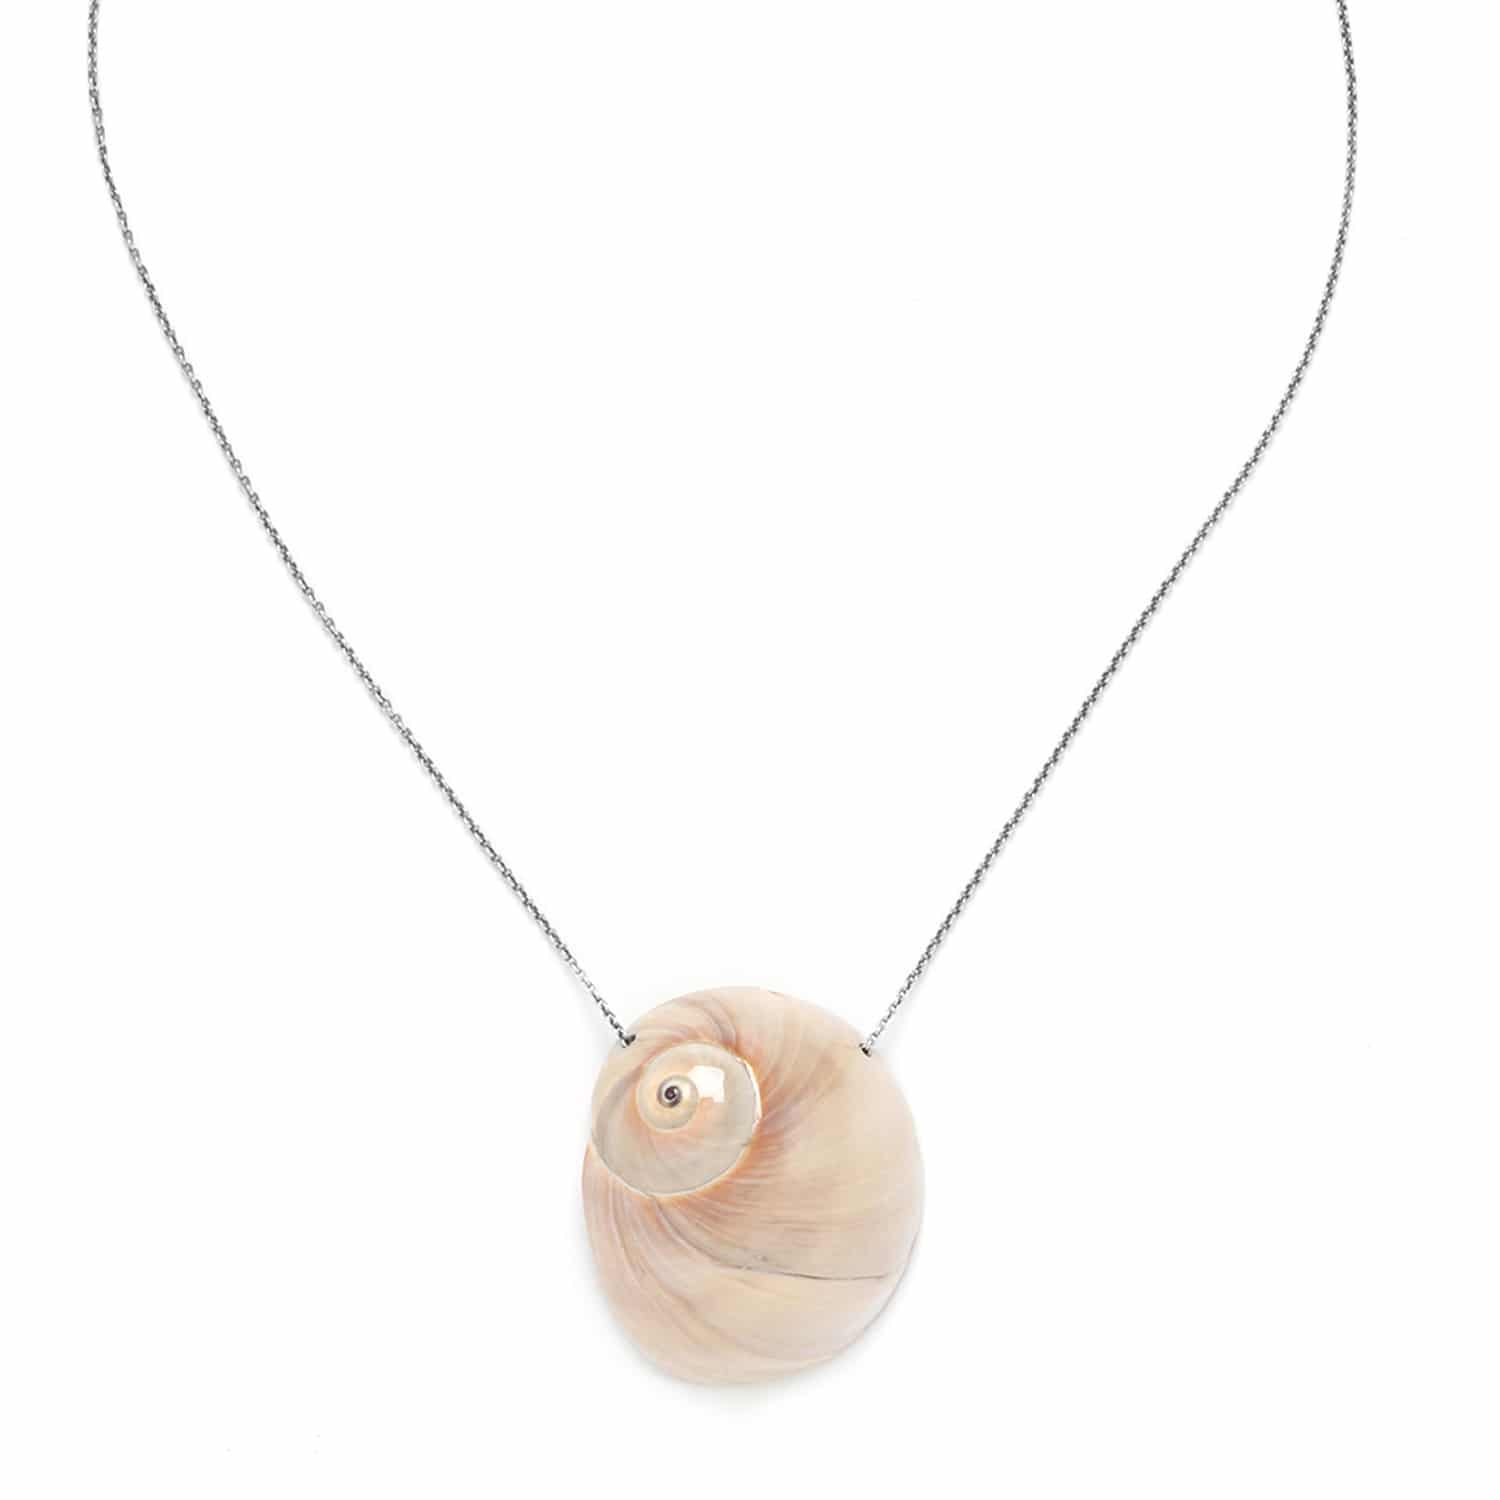 MAKATEA nautica small necklace